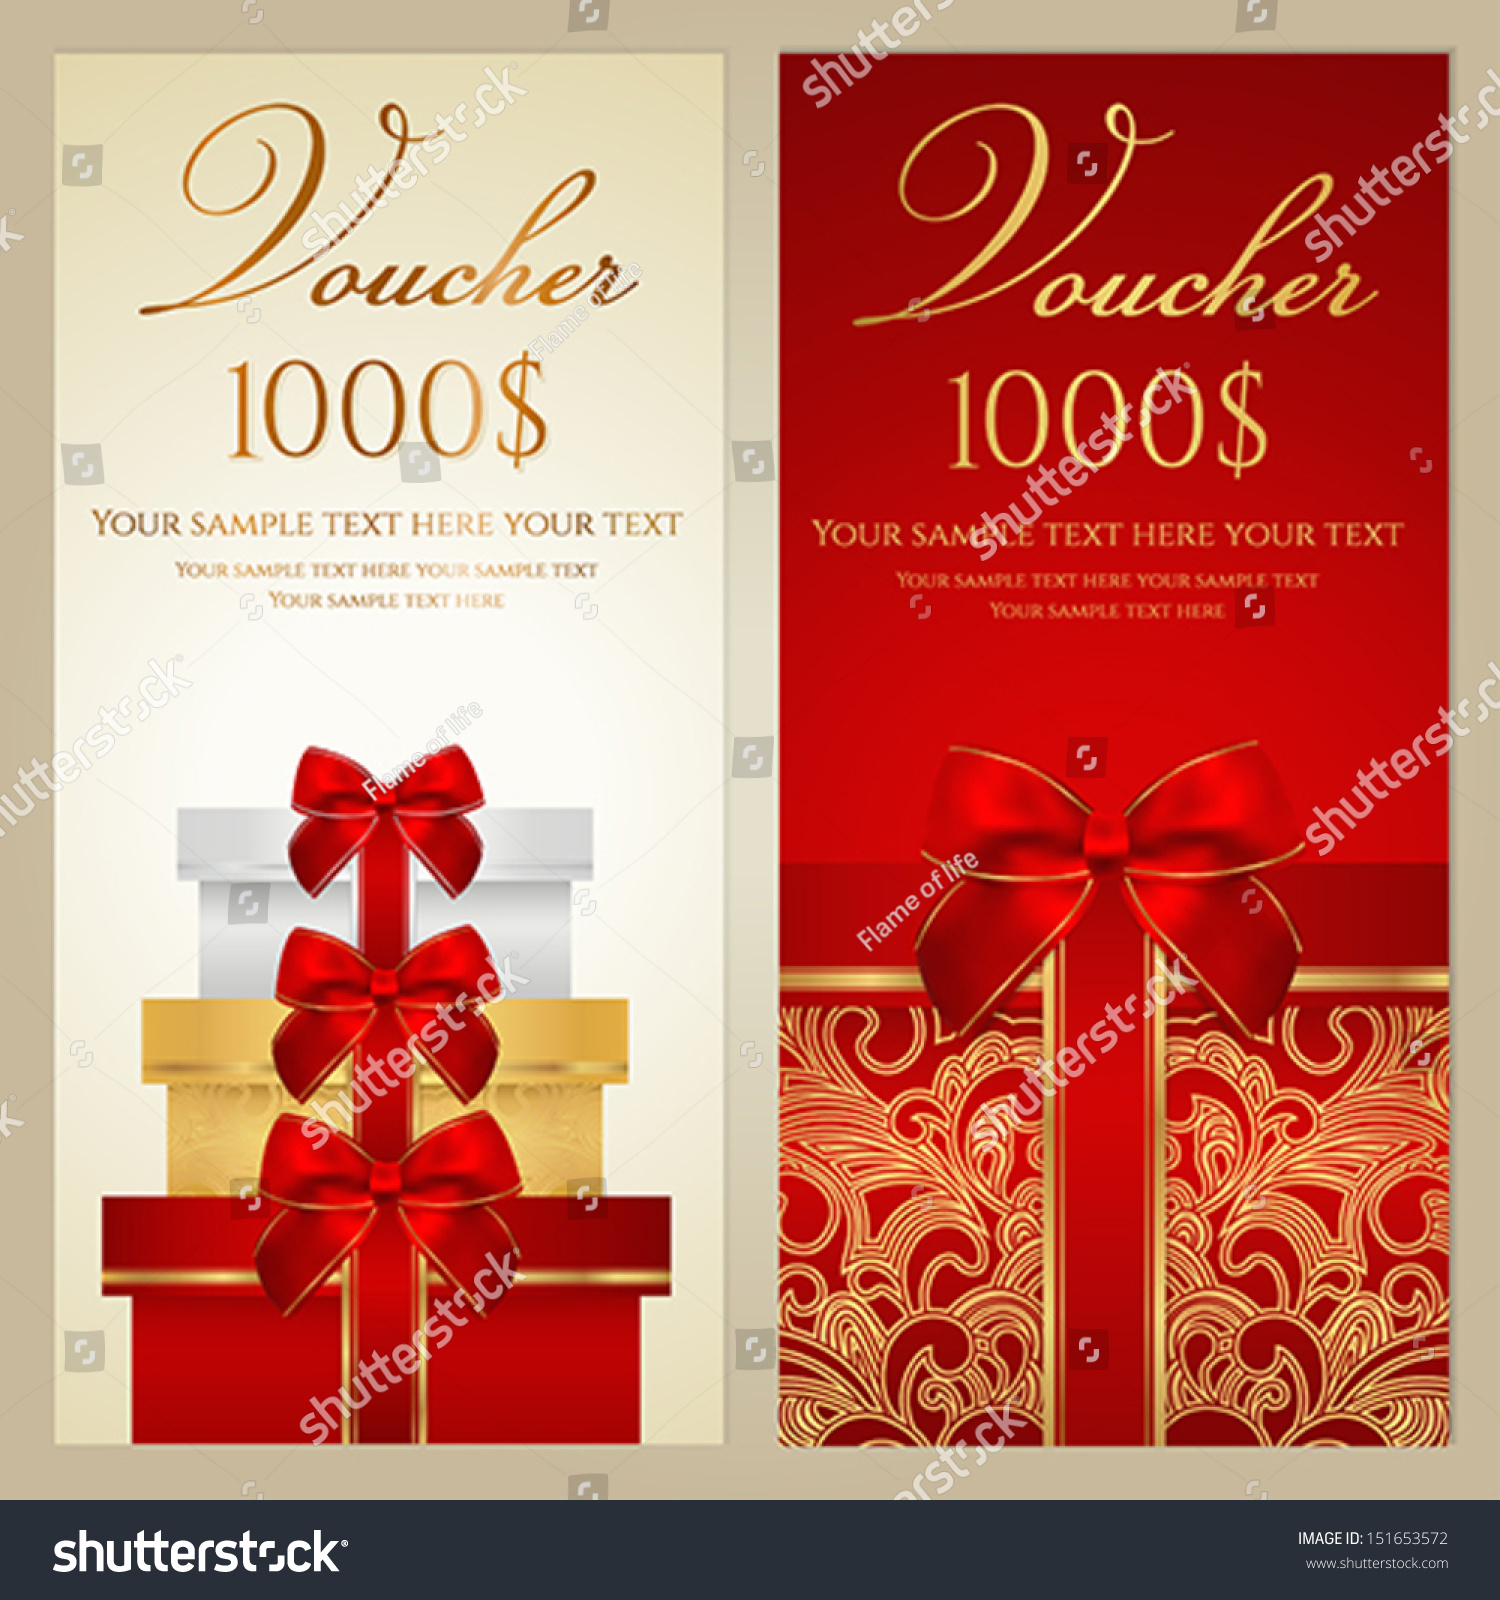 Voucher gift certificate coupon template border stock vector voucher gift certificate coupon template with border bow ribbons present alramifo Images